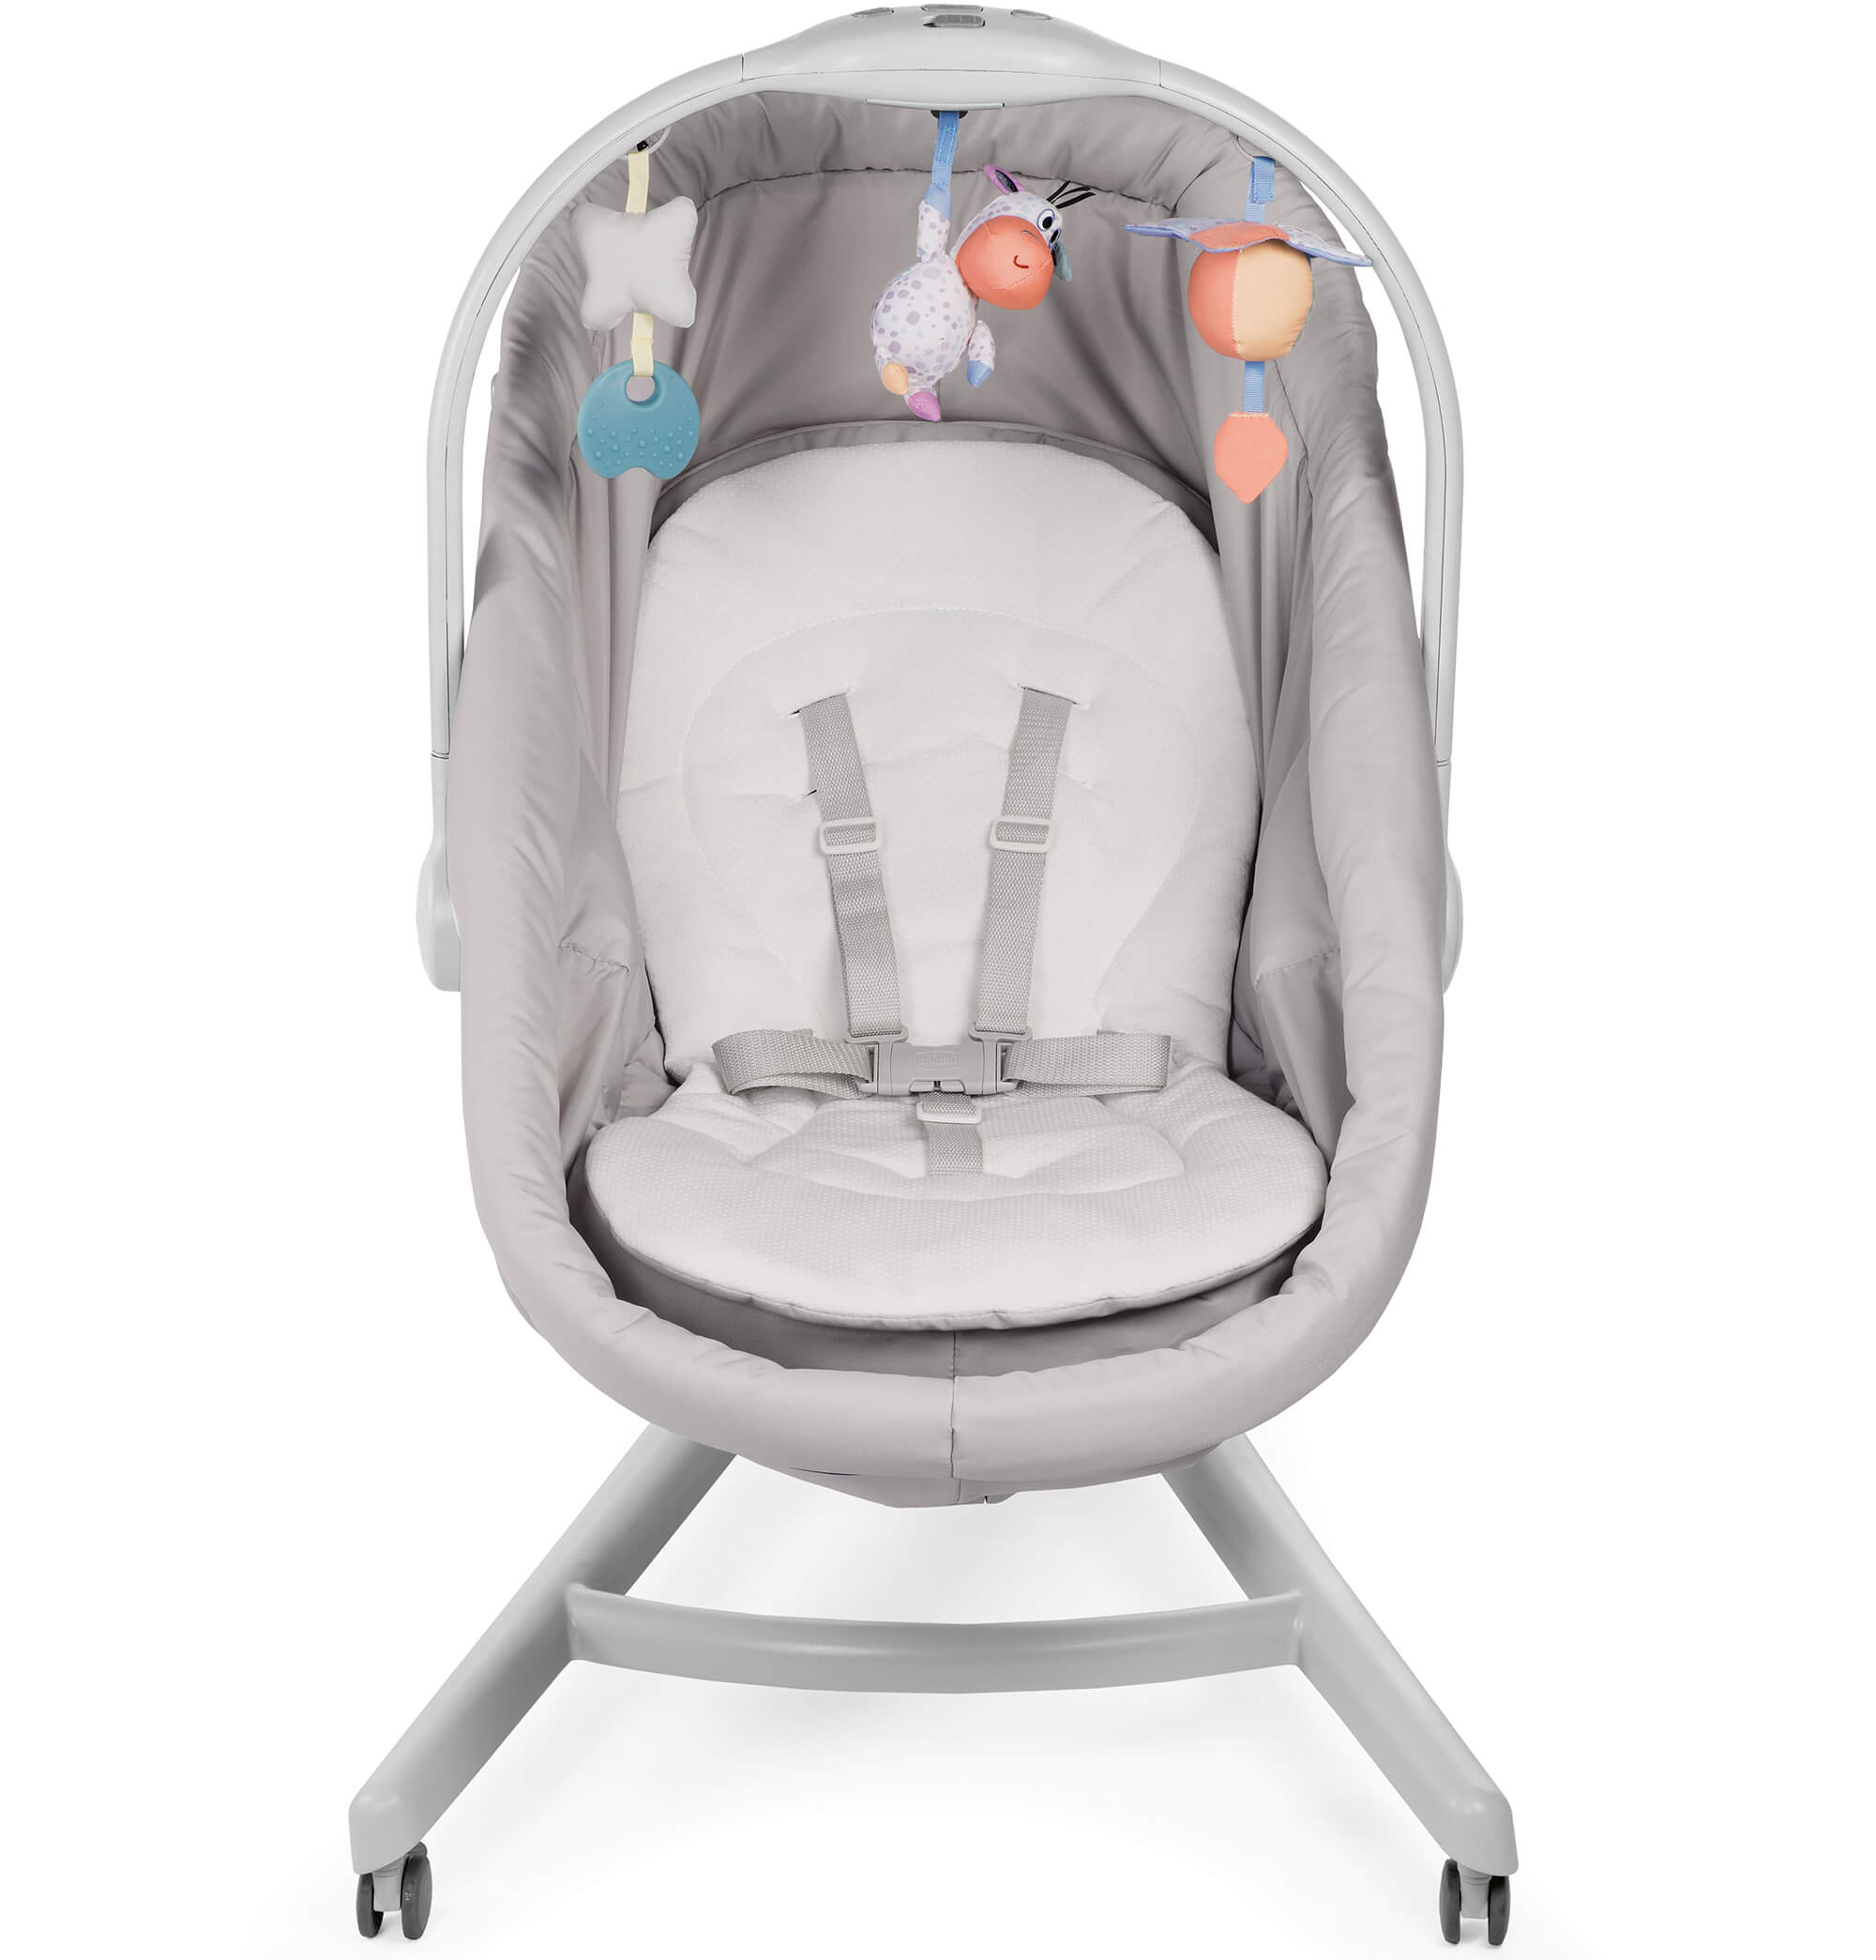 Chicco BABY HUG 4 In 1 AQUARELLE Bassinet, Reclining, High